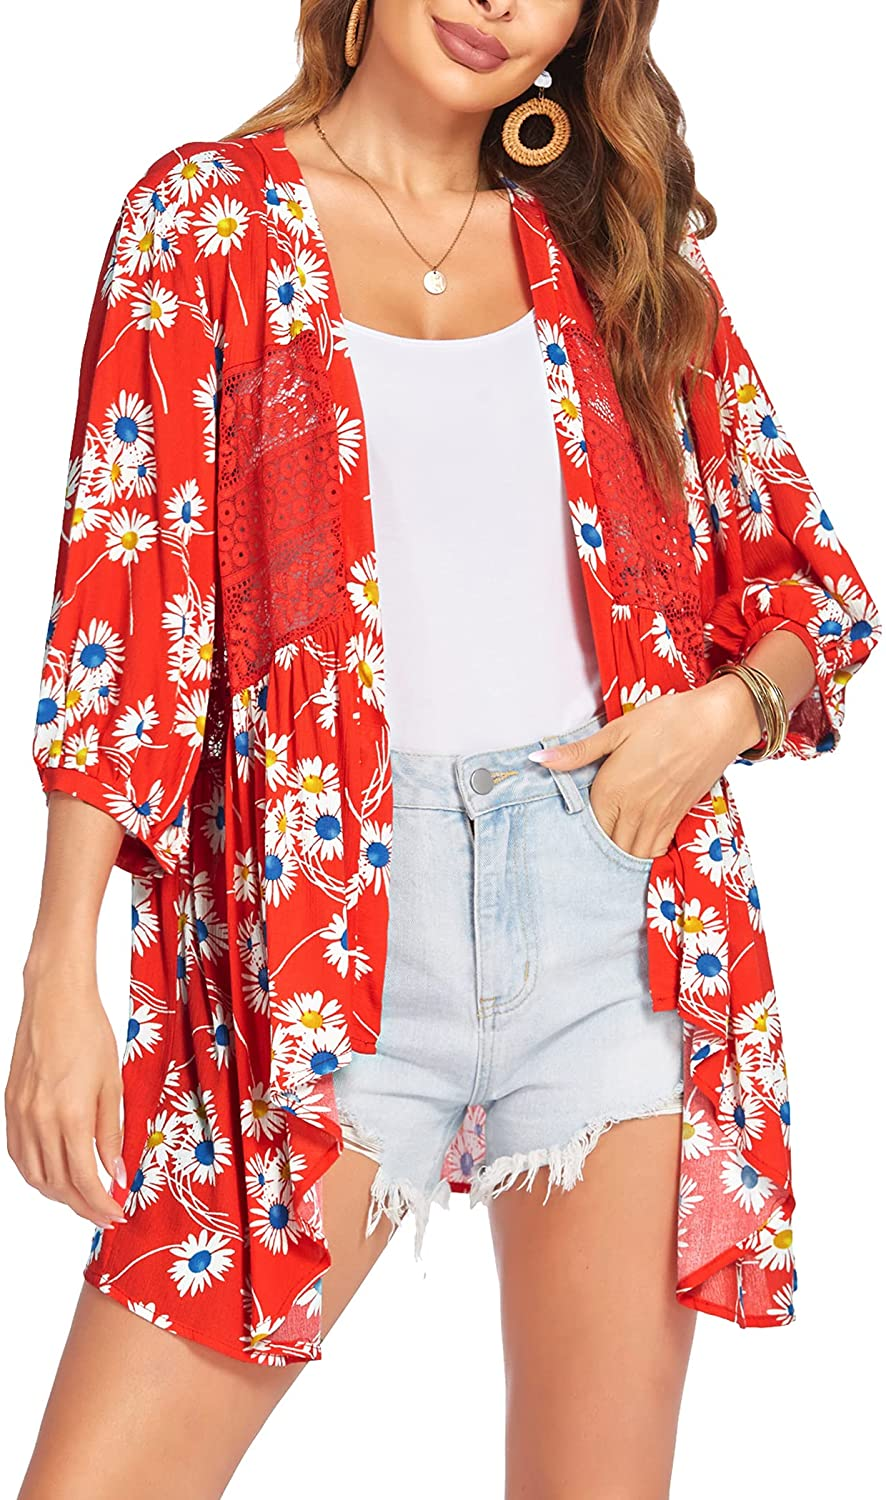 Hotouch Womens Cardigan Open Front 3/4 Sleeve Lace Lightweight Beach Summer Cover Up Tops